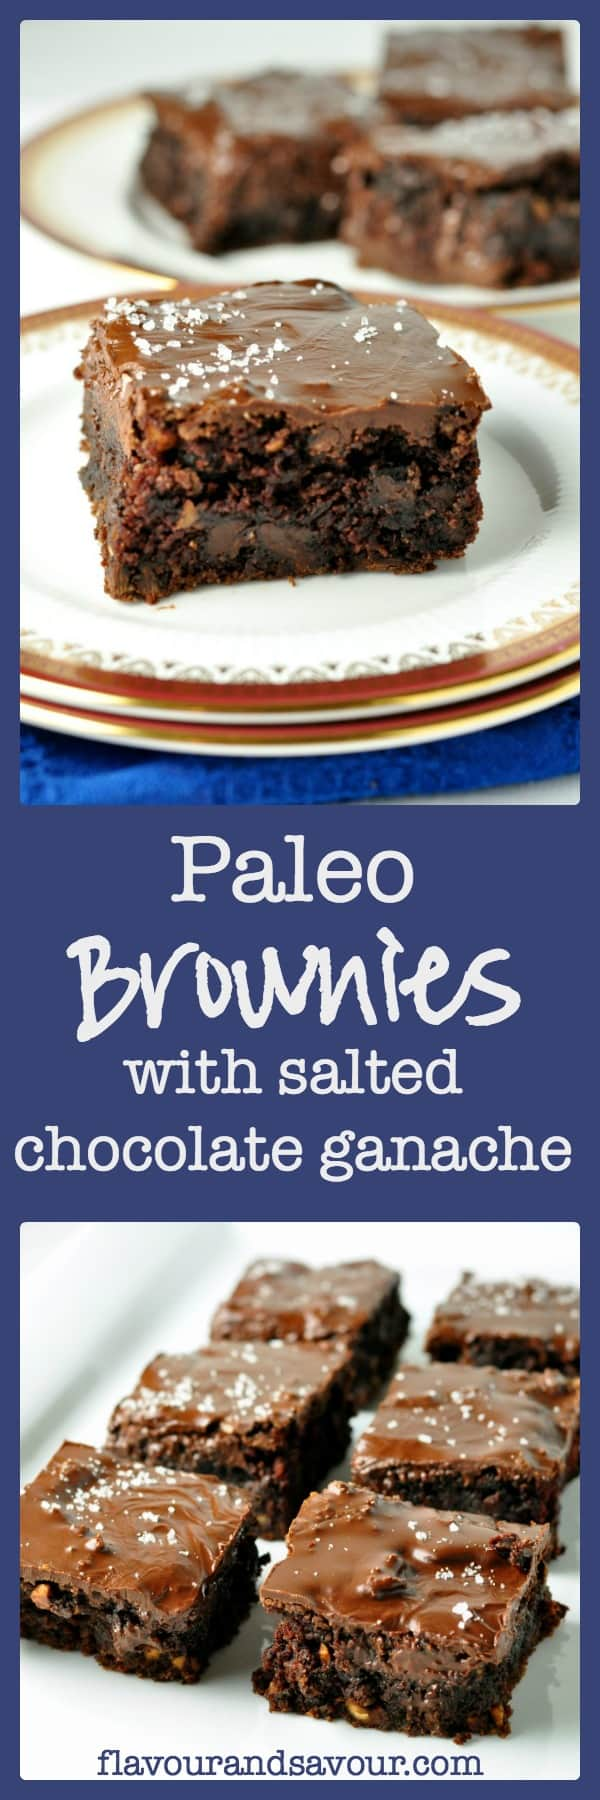 Paleo Brownies with Salted Chocolate Ganache. No grains, no dairy, no refined sugar. Just fudgy brownies with an easy coconut oil and chocolate ganache.Oh my. |www.flavourandsavour.com